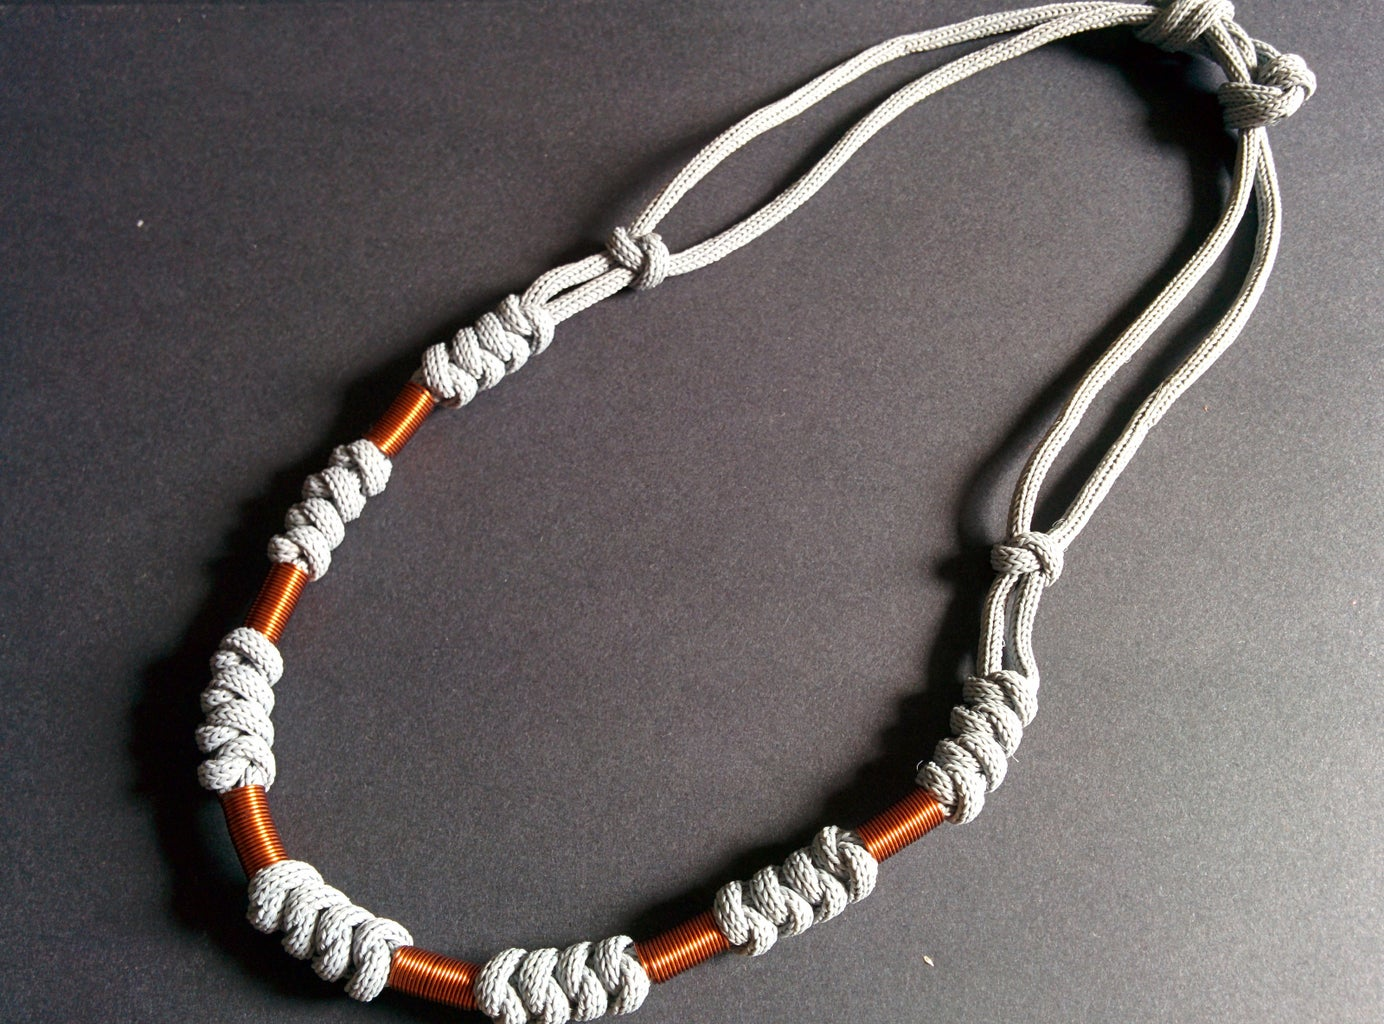 Making the Necklace Length Adjustable